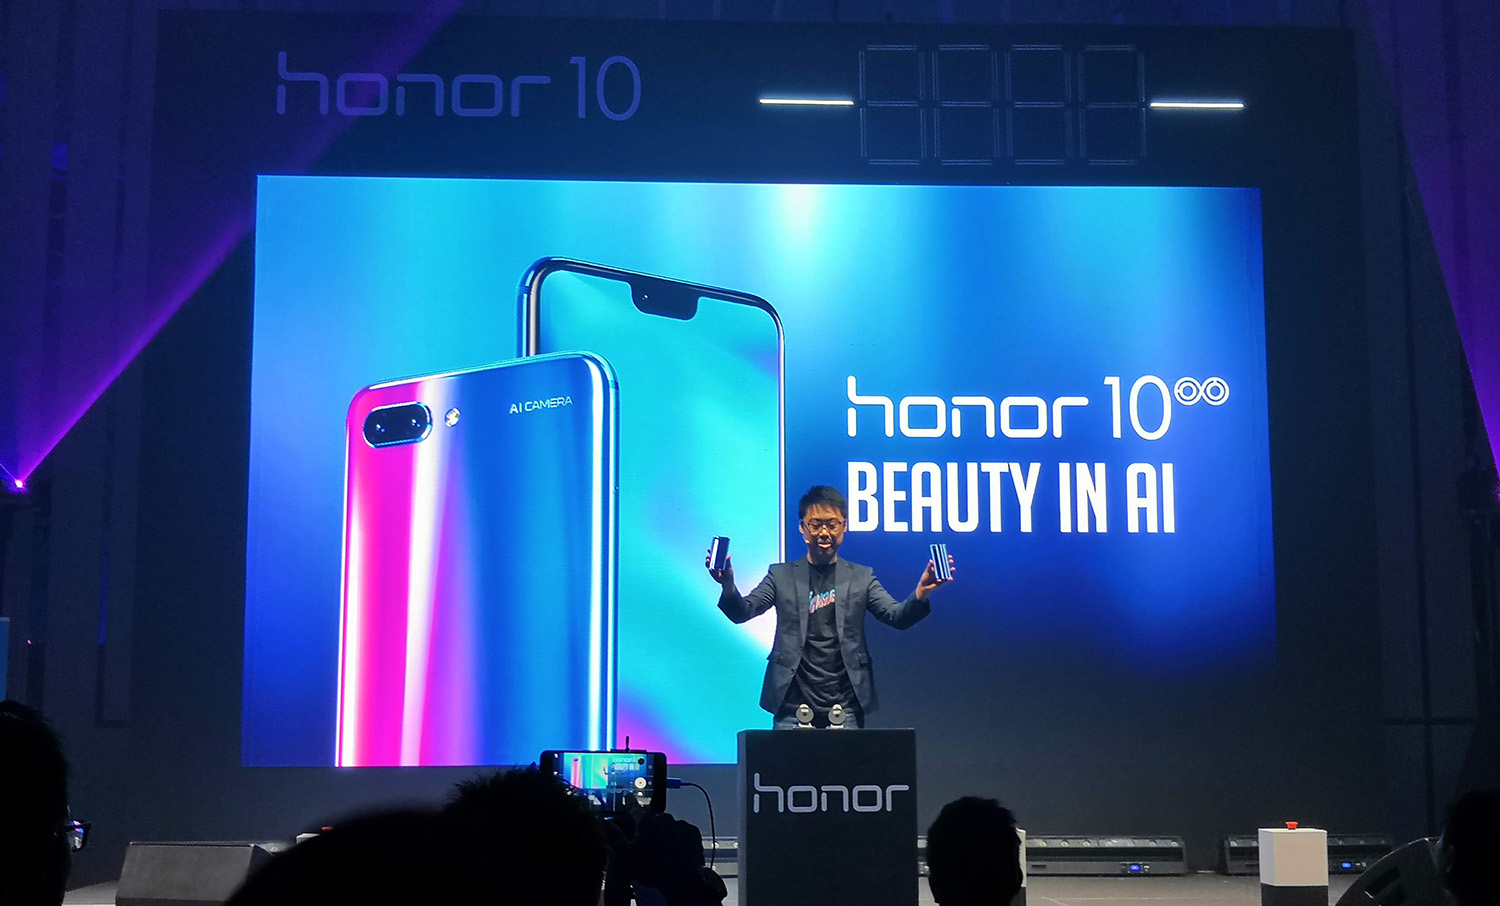 Aurora Inspired Honor 10 With AI Camera Launched in Malaysia